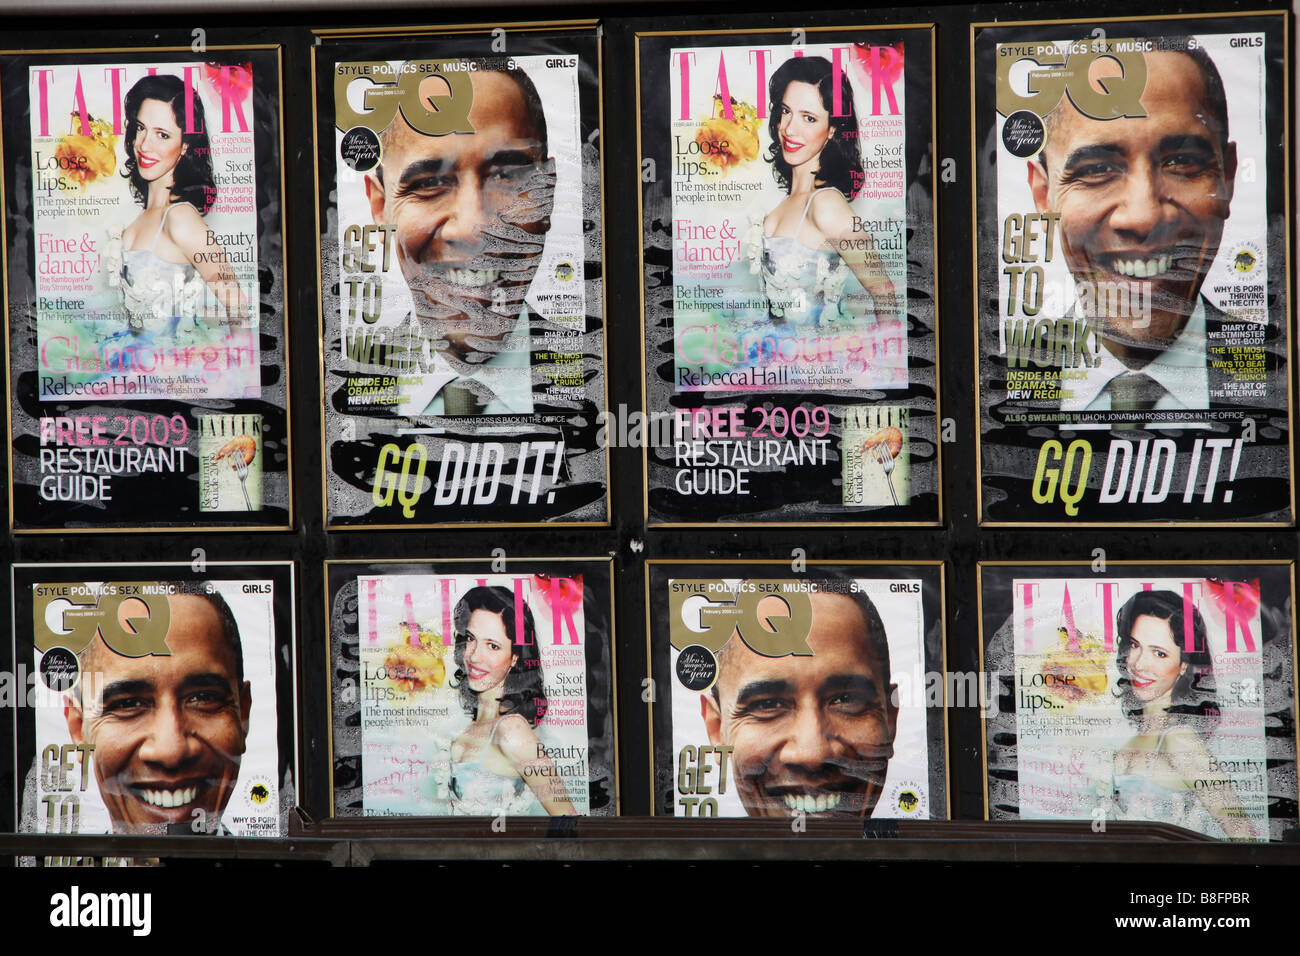 Barack Obama magazine covers - Stock Image